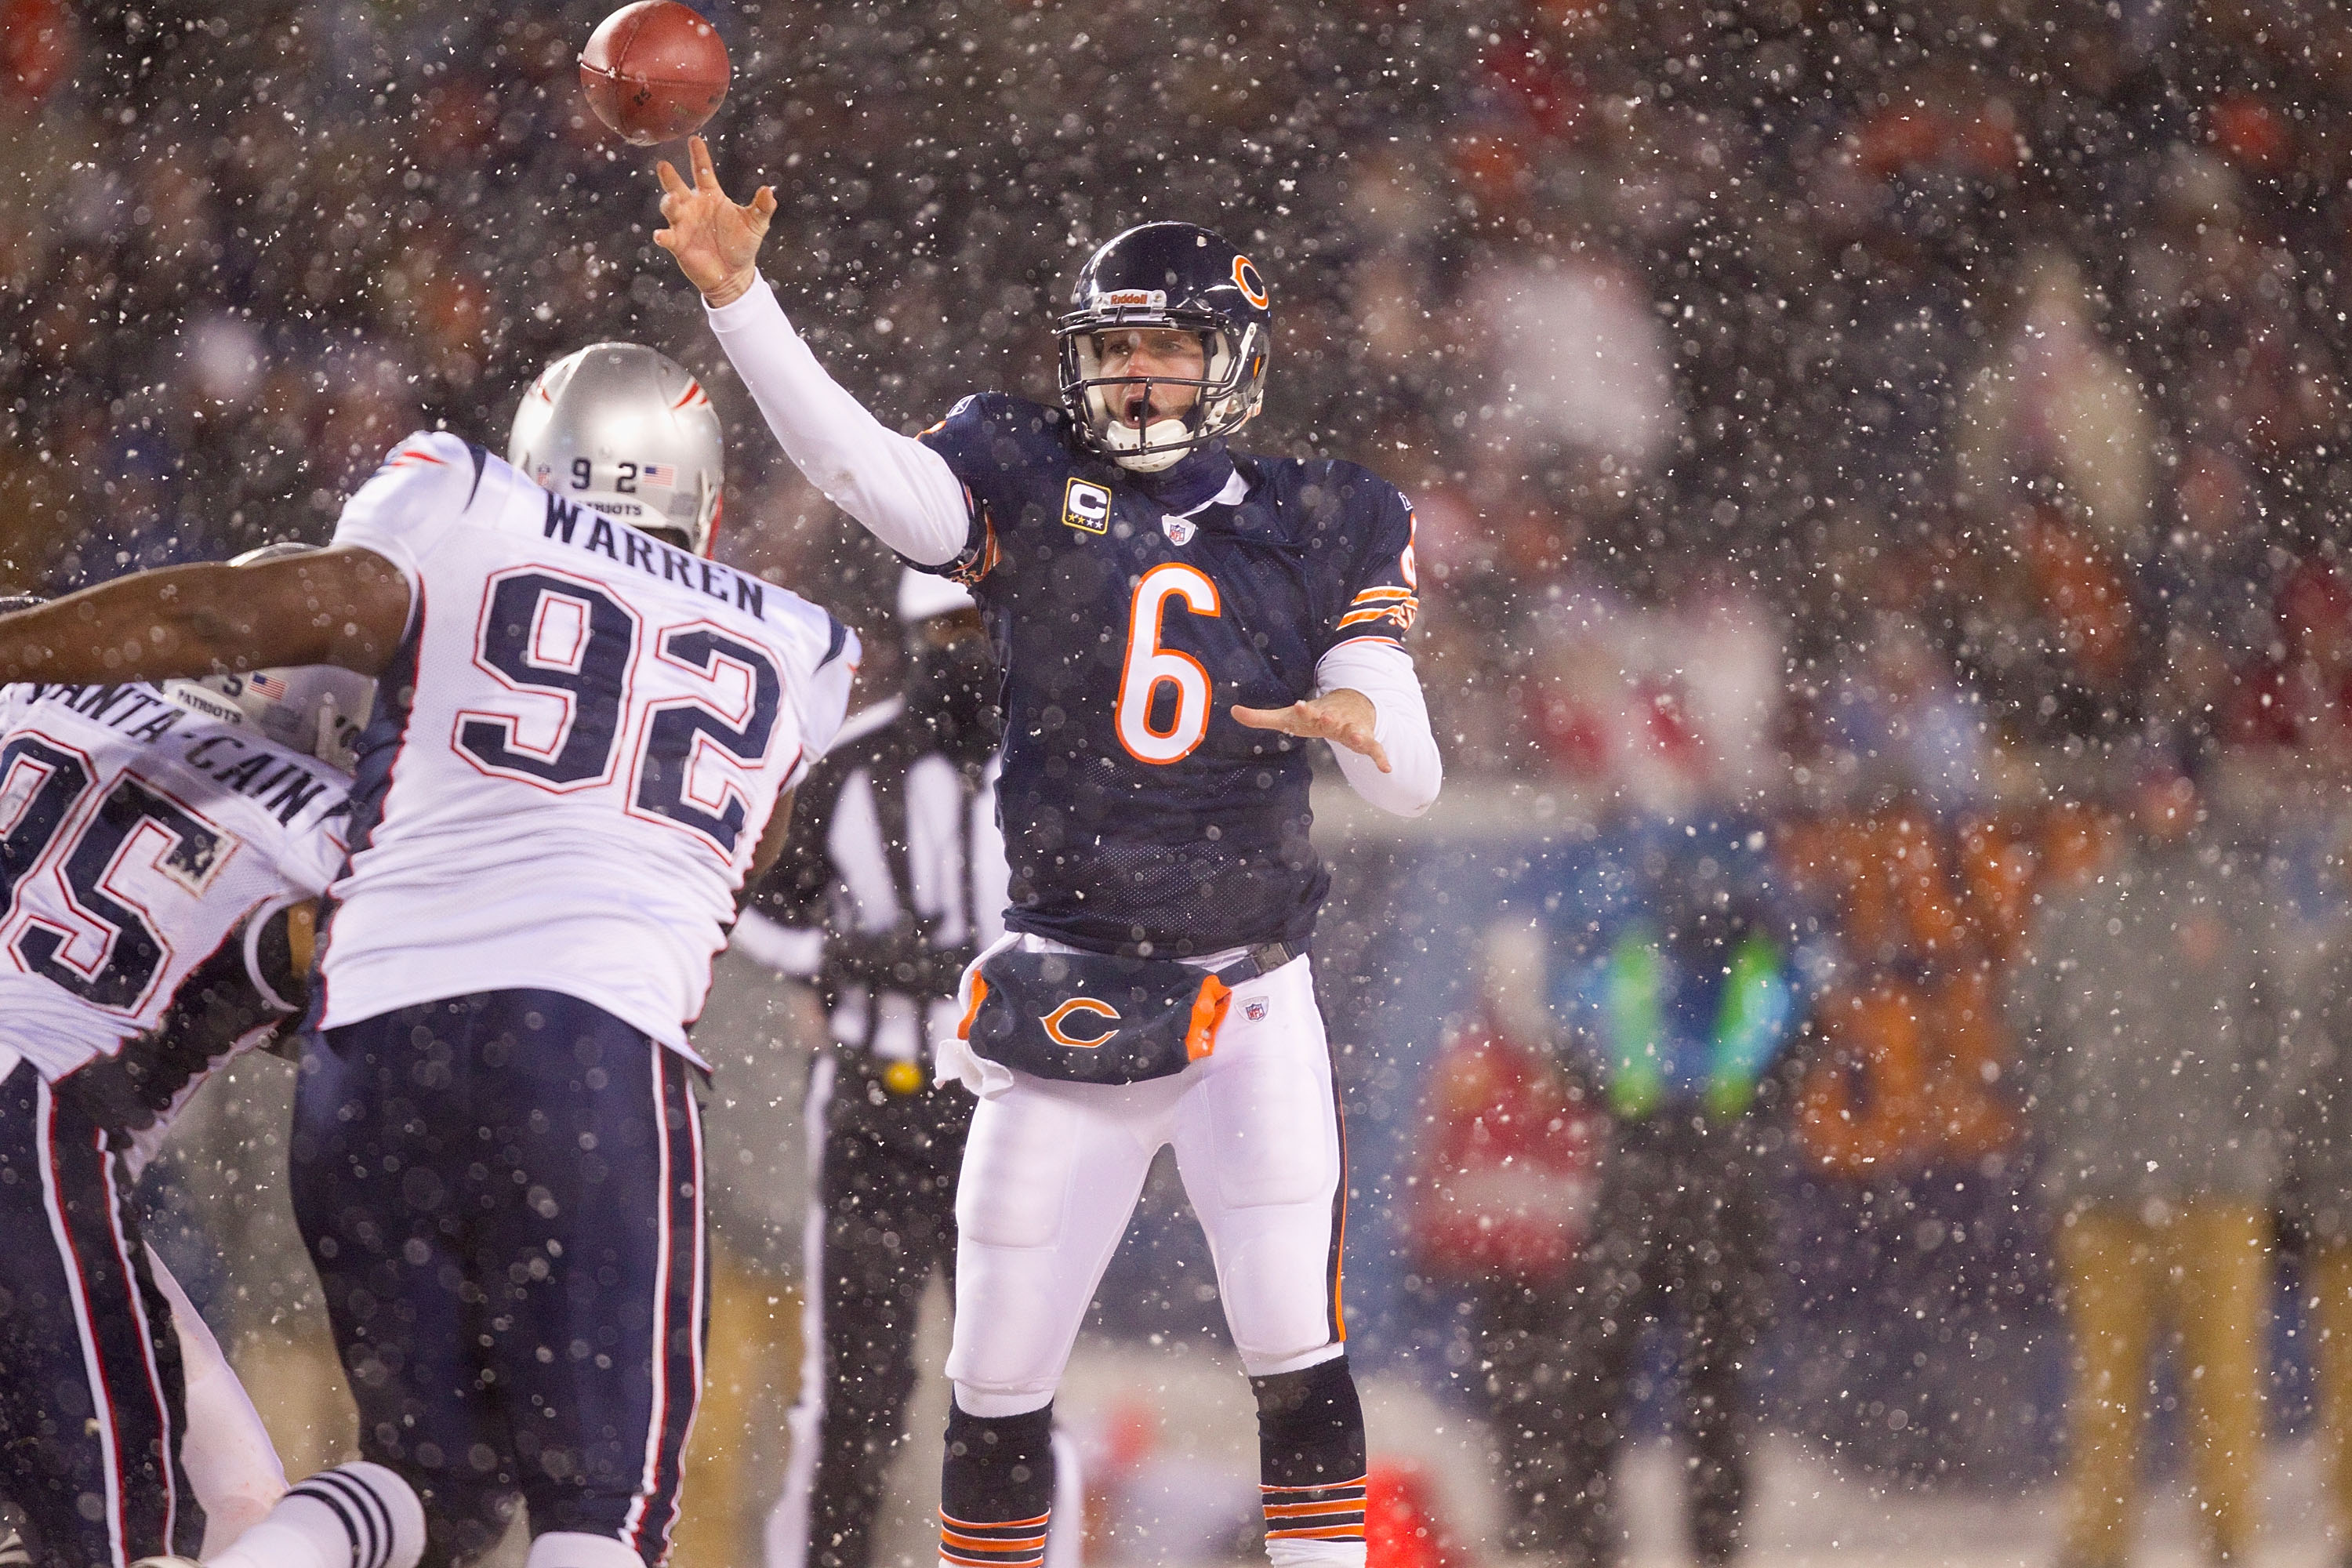 CHICAGO, IL - DECEMBER 12: Jay Cutler #6 of the Chicago Bears looks to pass against the New England Patriots at Soldier Field on December 12, 2010 in Chicago, Illinois.  The Patriots beat the Bears 36-7.  (Photo by Dilip Vishwanat/Getty Images)